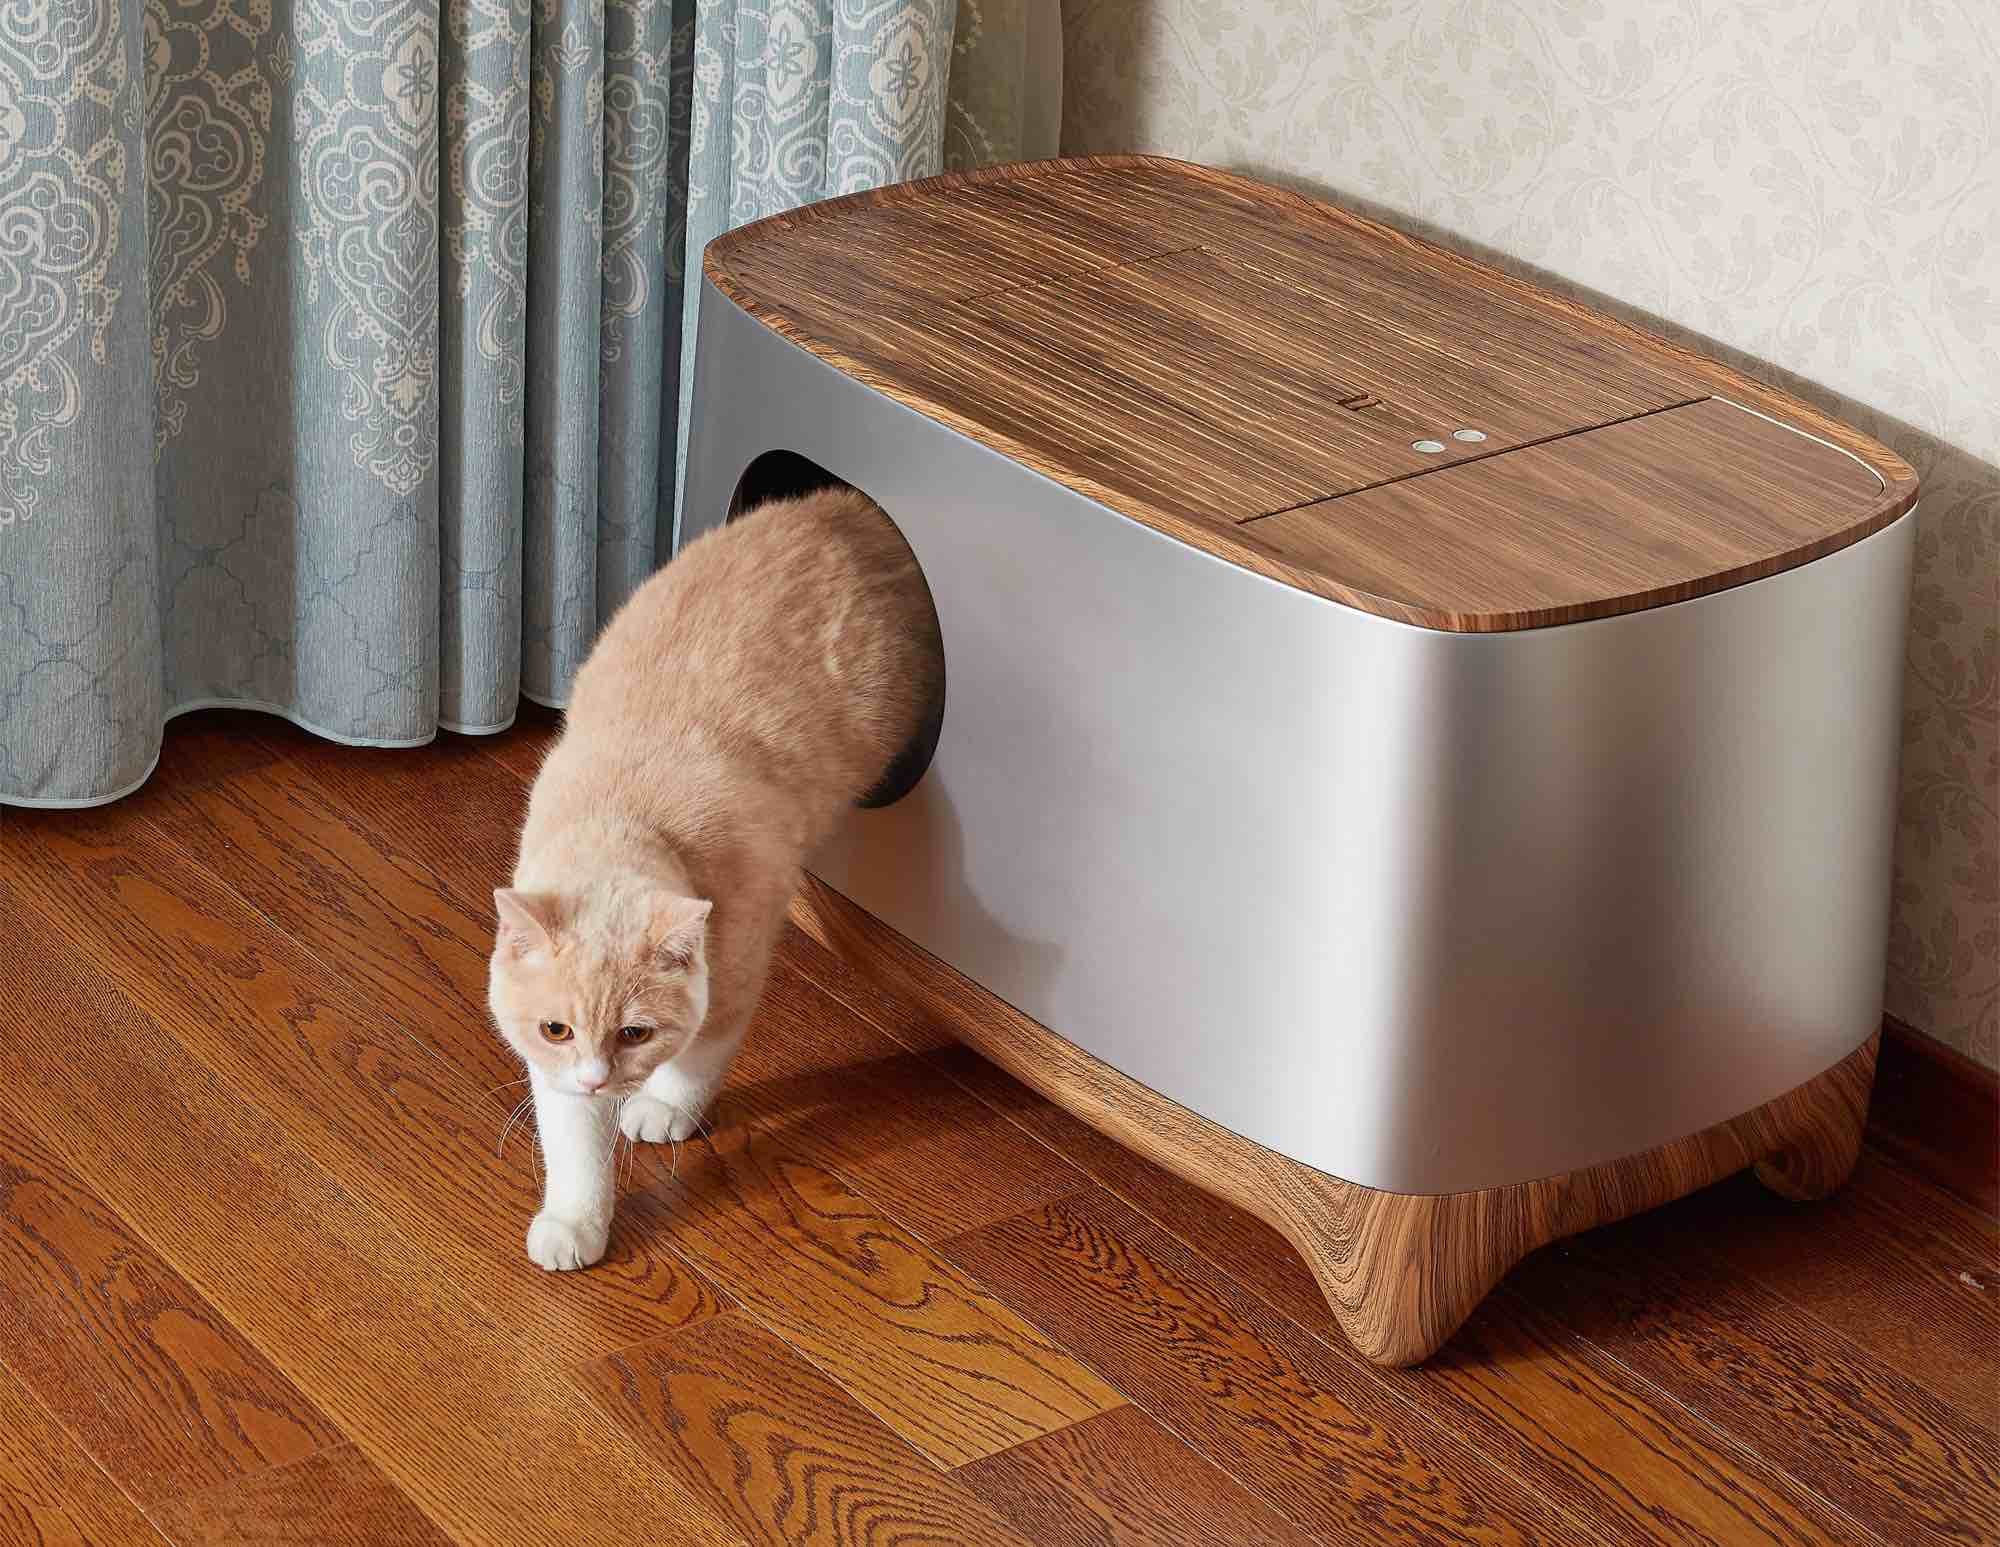 This Self Cleaning Litter Box Automatically Packs Pet Waste